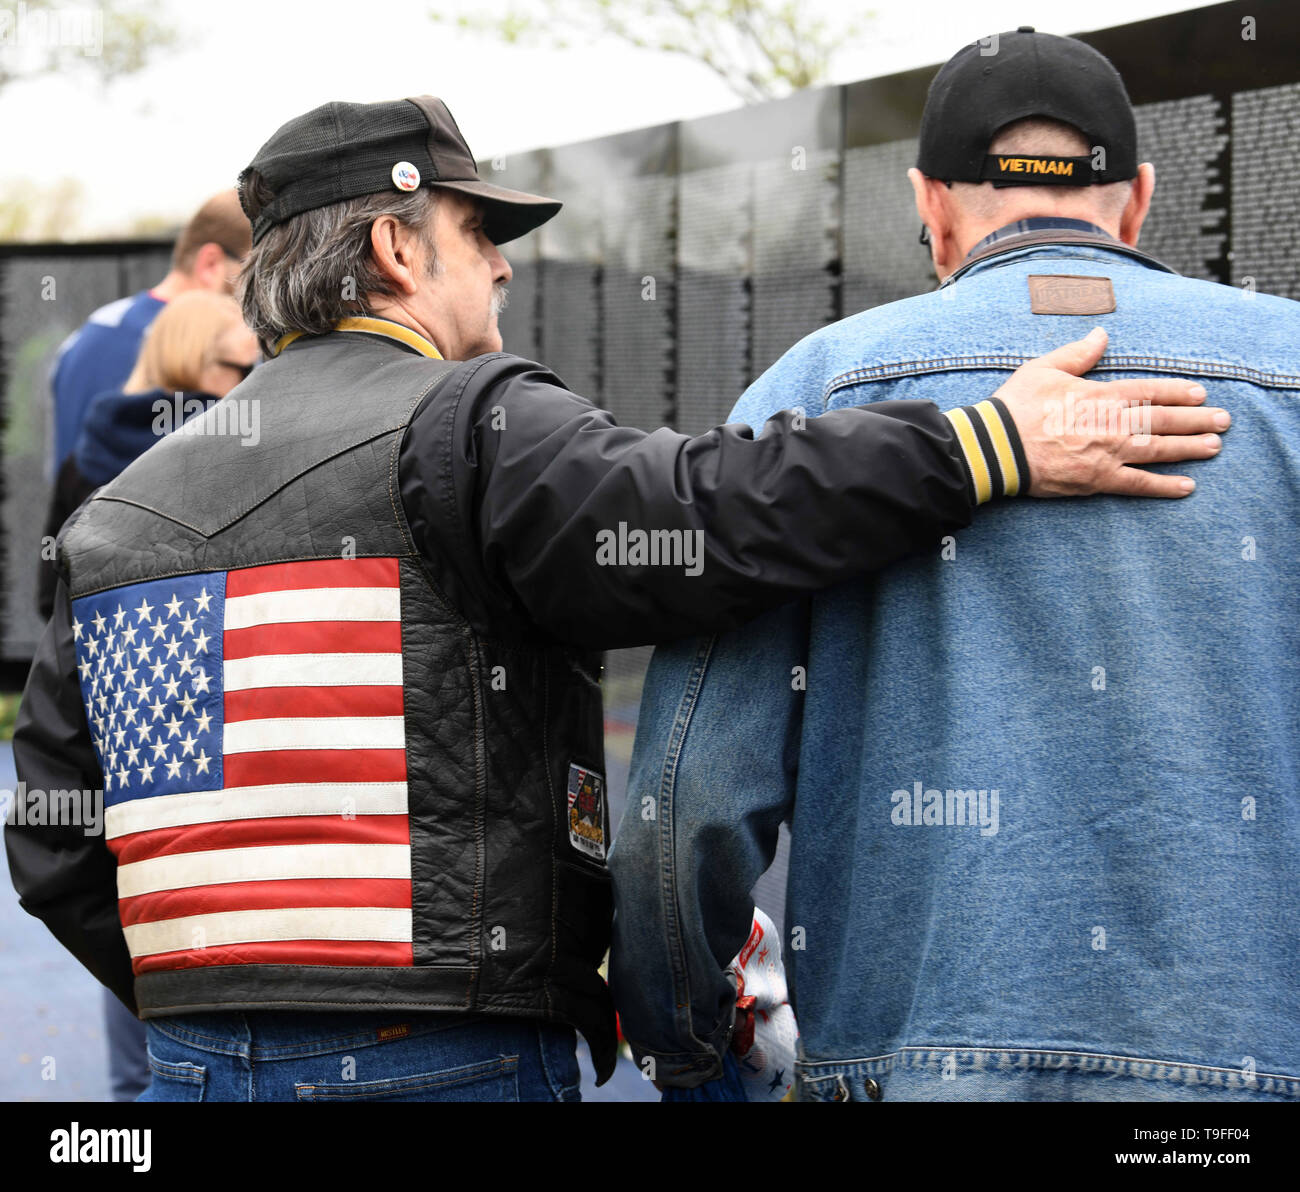 Racine, Wisconsin, USA. 18th May, 2019. An Army veteran who identifies himself only as 'Shorty, ' left, comforts Vietnam War veteran Ronald Hansen at the Moving Wall, a half-size replica of the Vietnam Veterans Memorial, in Racine, Wisconsin, Saturday May 18, 2019. Hansen, who served in the Army from 1968-69, told 'Shorty' of his desire to take a military Honor Flight. Forty-seven soldiers from Racine were killed during the war. The Moving Wall has been touring the United States for more than 30 years. Credit: Mark Hertzberg/ZUMA Wire/Alamy Live News - Stock Image